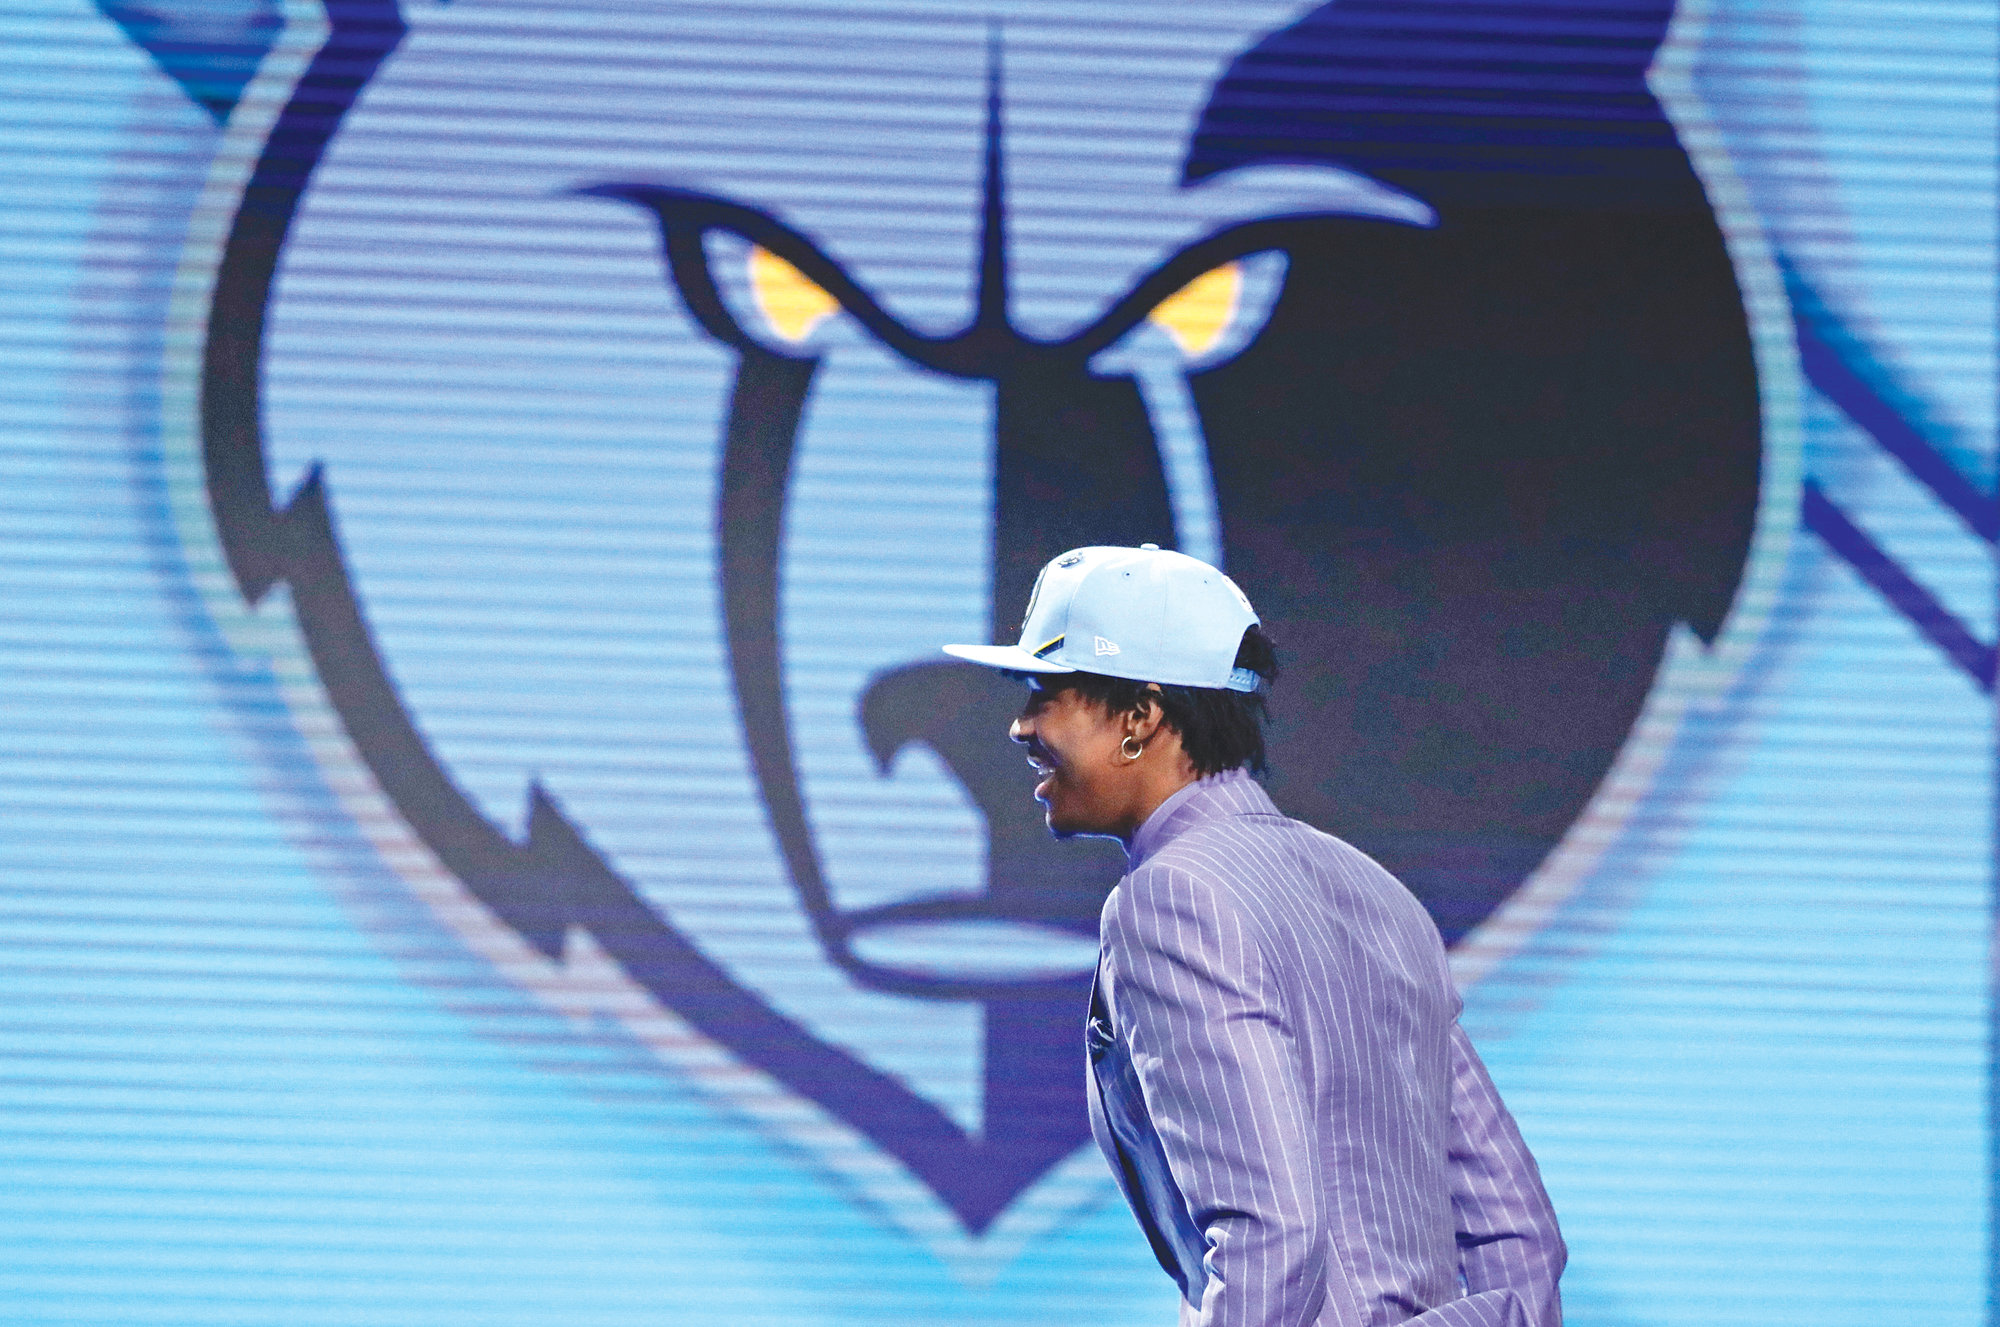 Murray State's Ja Morant walks on stage after being selected the second pick overall by the Memphis Grizzlies during the NBA basketball draft Thursday in New York.